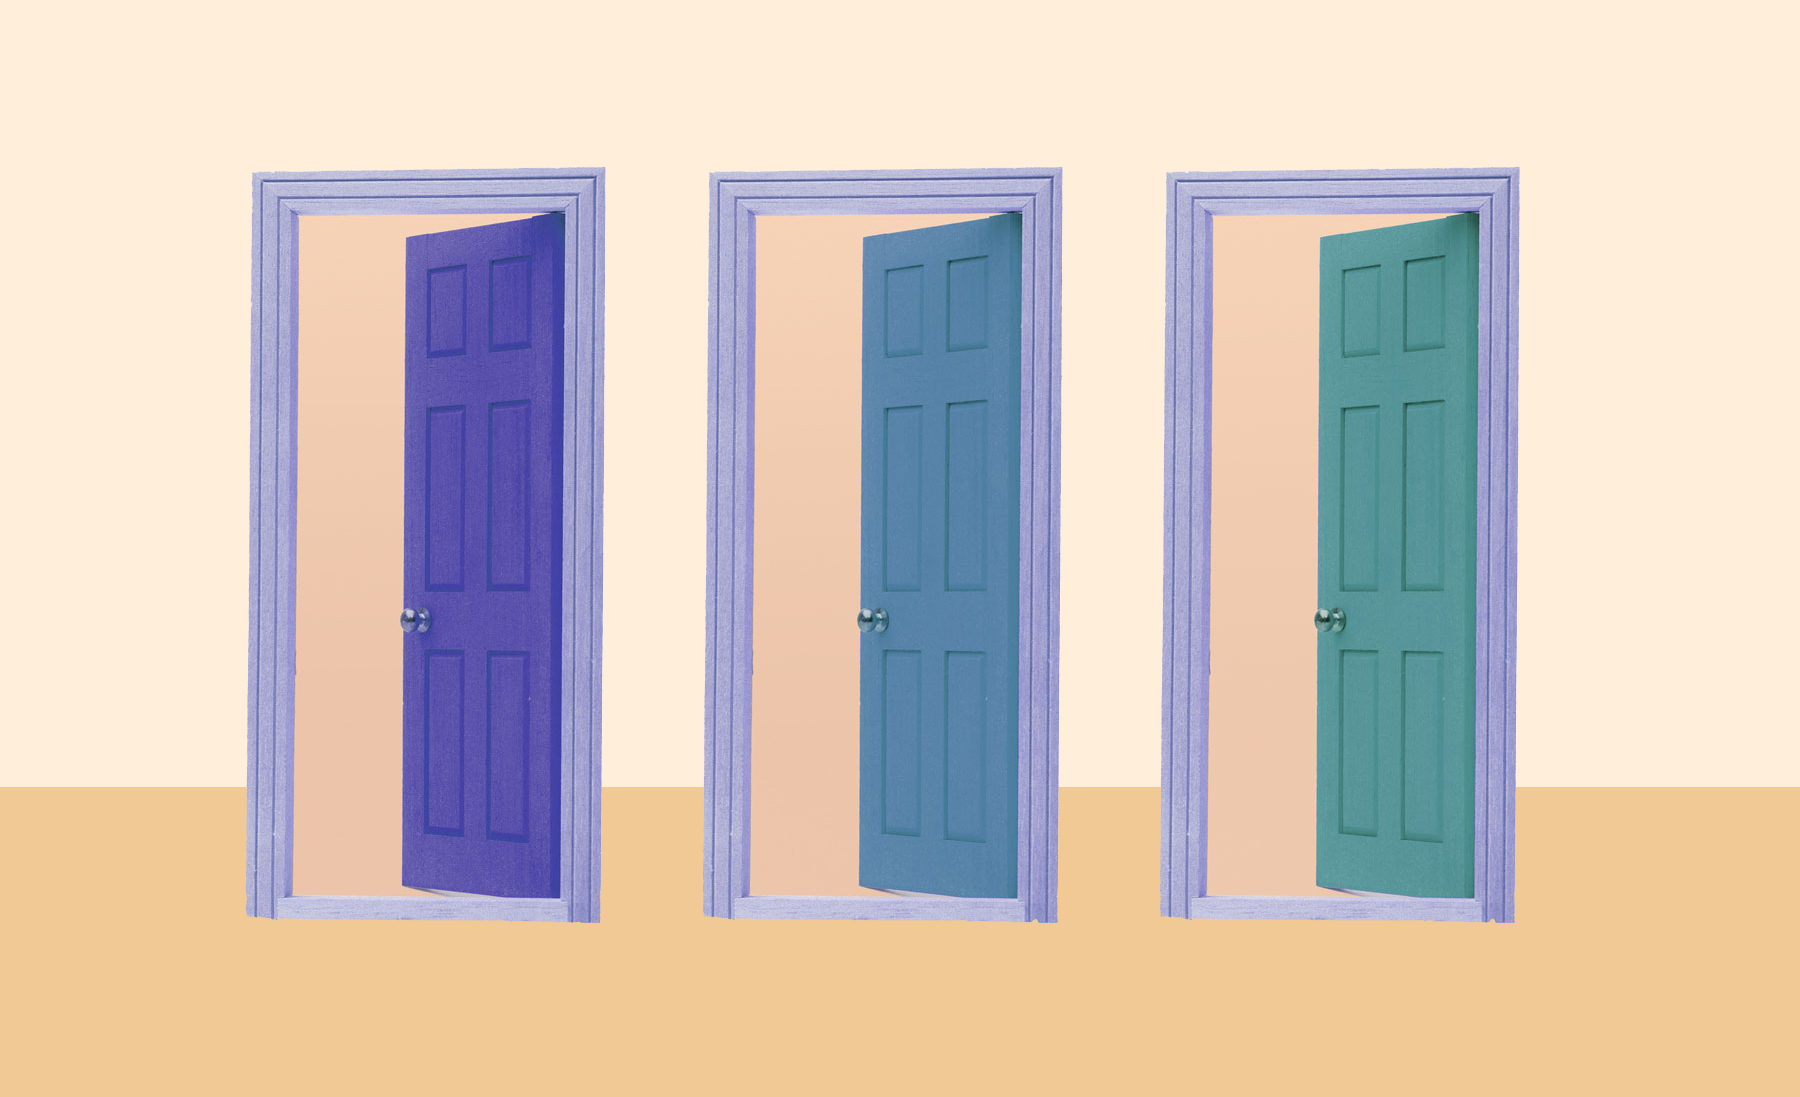 Painted Interior Doors Trend, 3 colorful doors